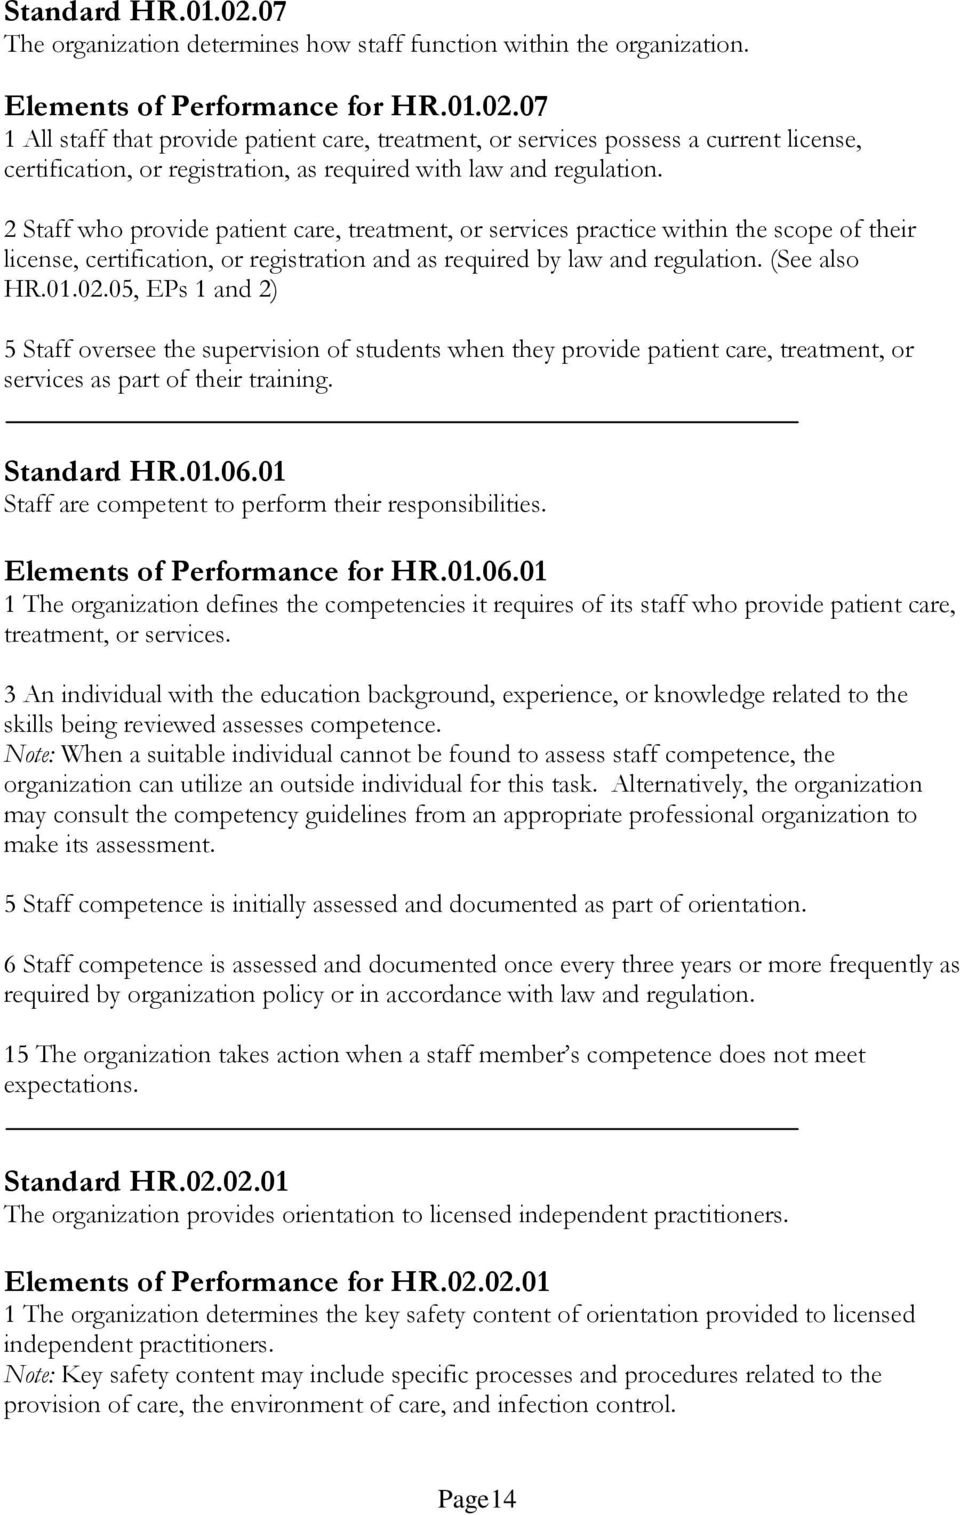 05, EPs 1 and 2) 5 Staff oversee the supervision of students when they provide patient care, treatment, or services as part of their training. Standard HR.01.06.